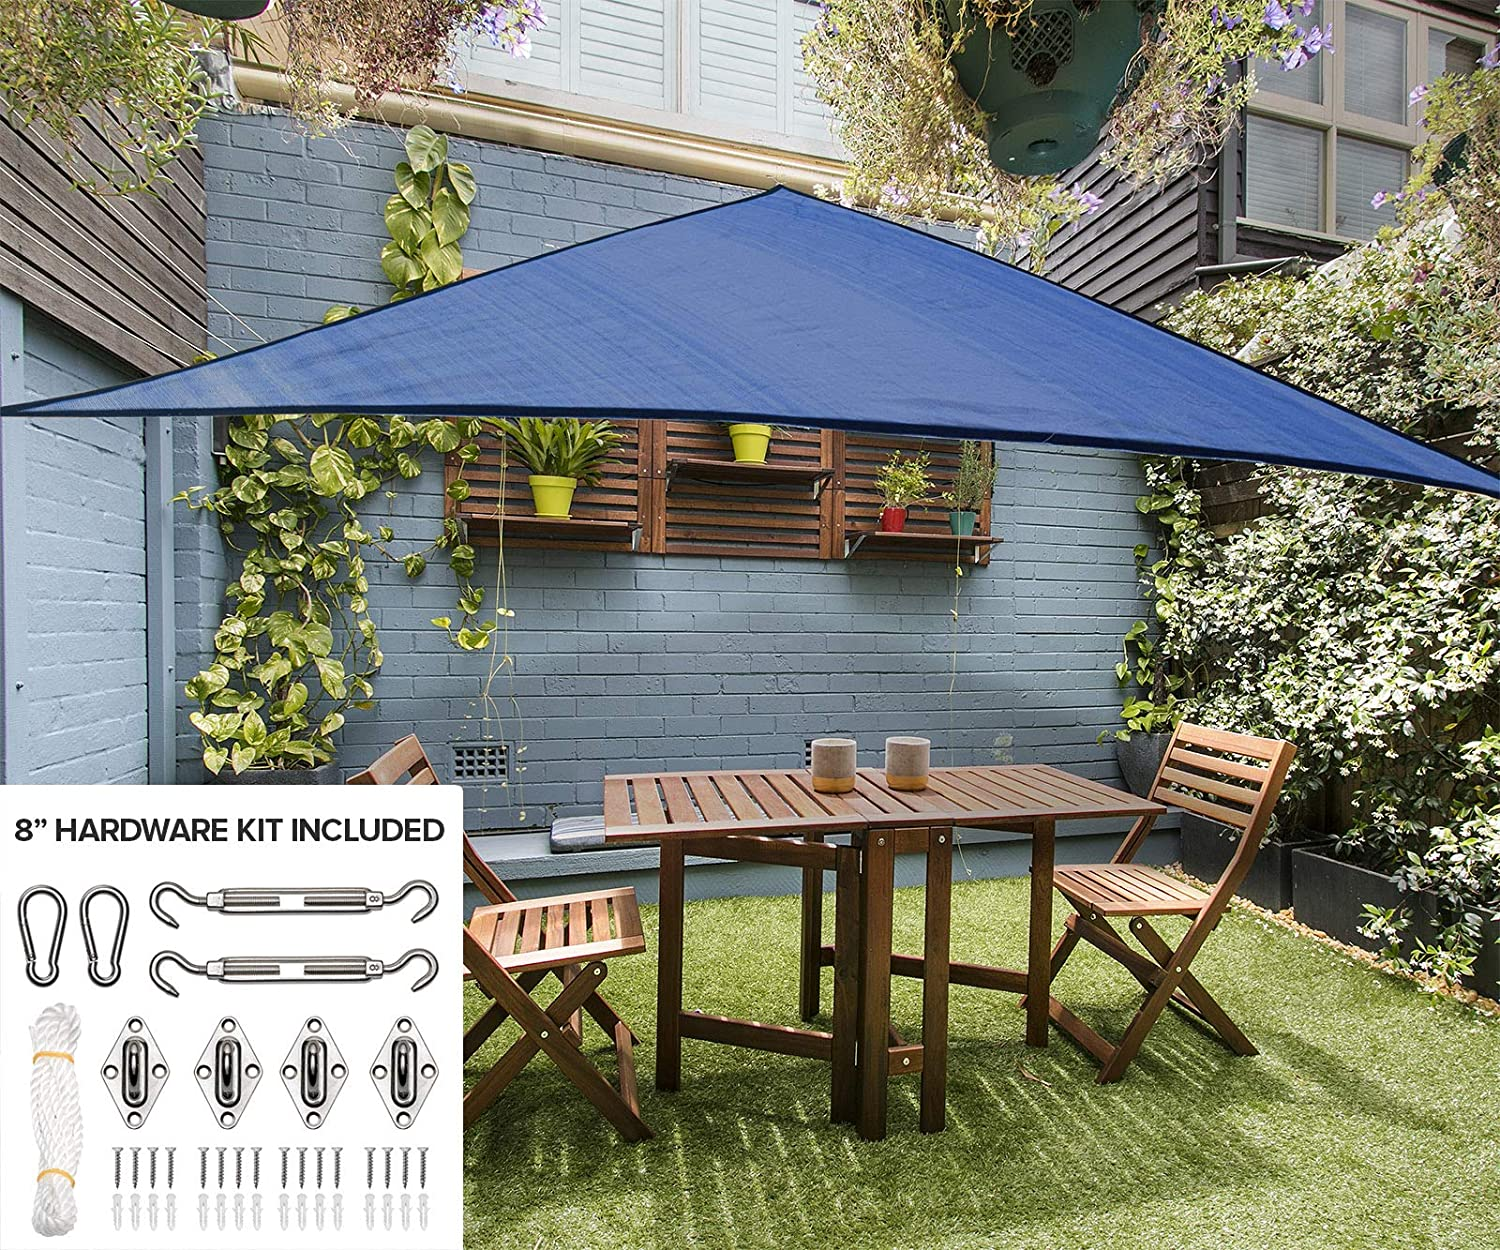 12 Triangle Sun Shade Sail Canopy in Cobalt Blue – Durable Outdoor Patio Cover Pergola Awning Sun Shade – Heavy Duty 8 inch Stainless Steel Hardware Kit 12 Triangle, Cobalt Blue